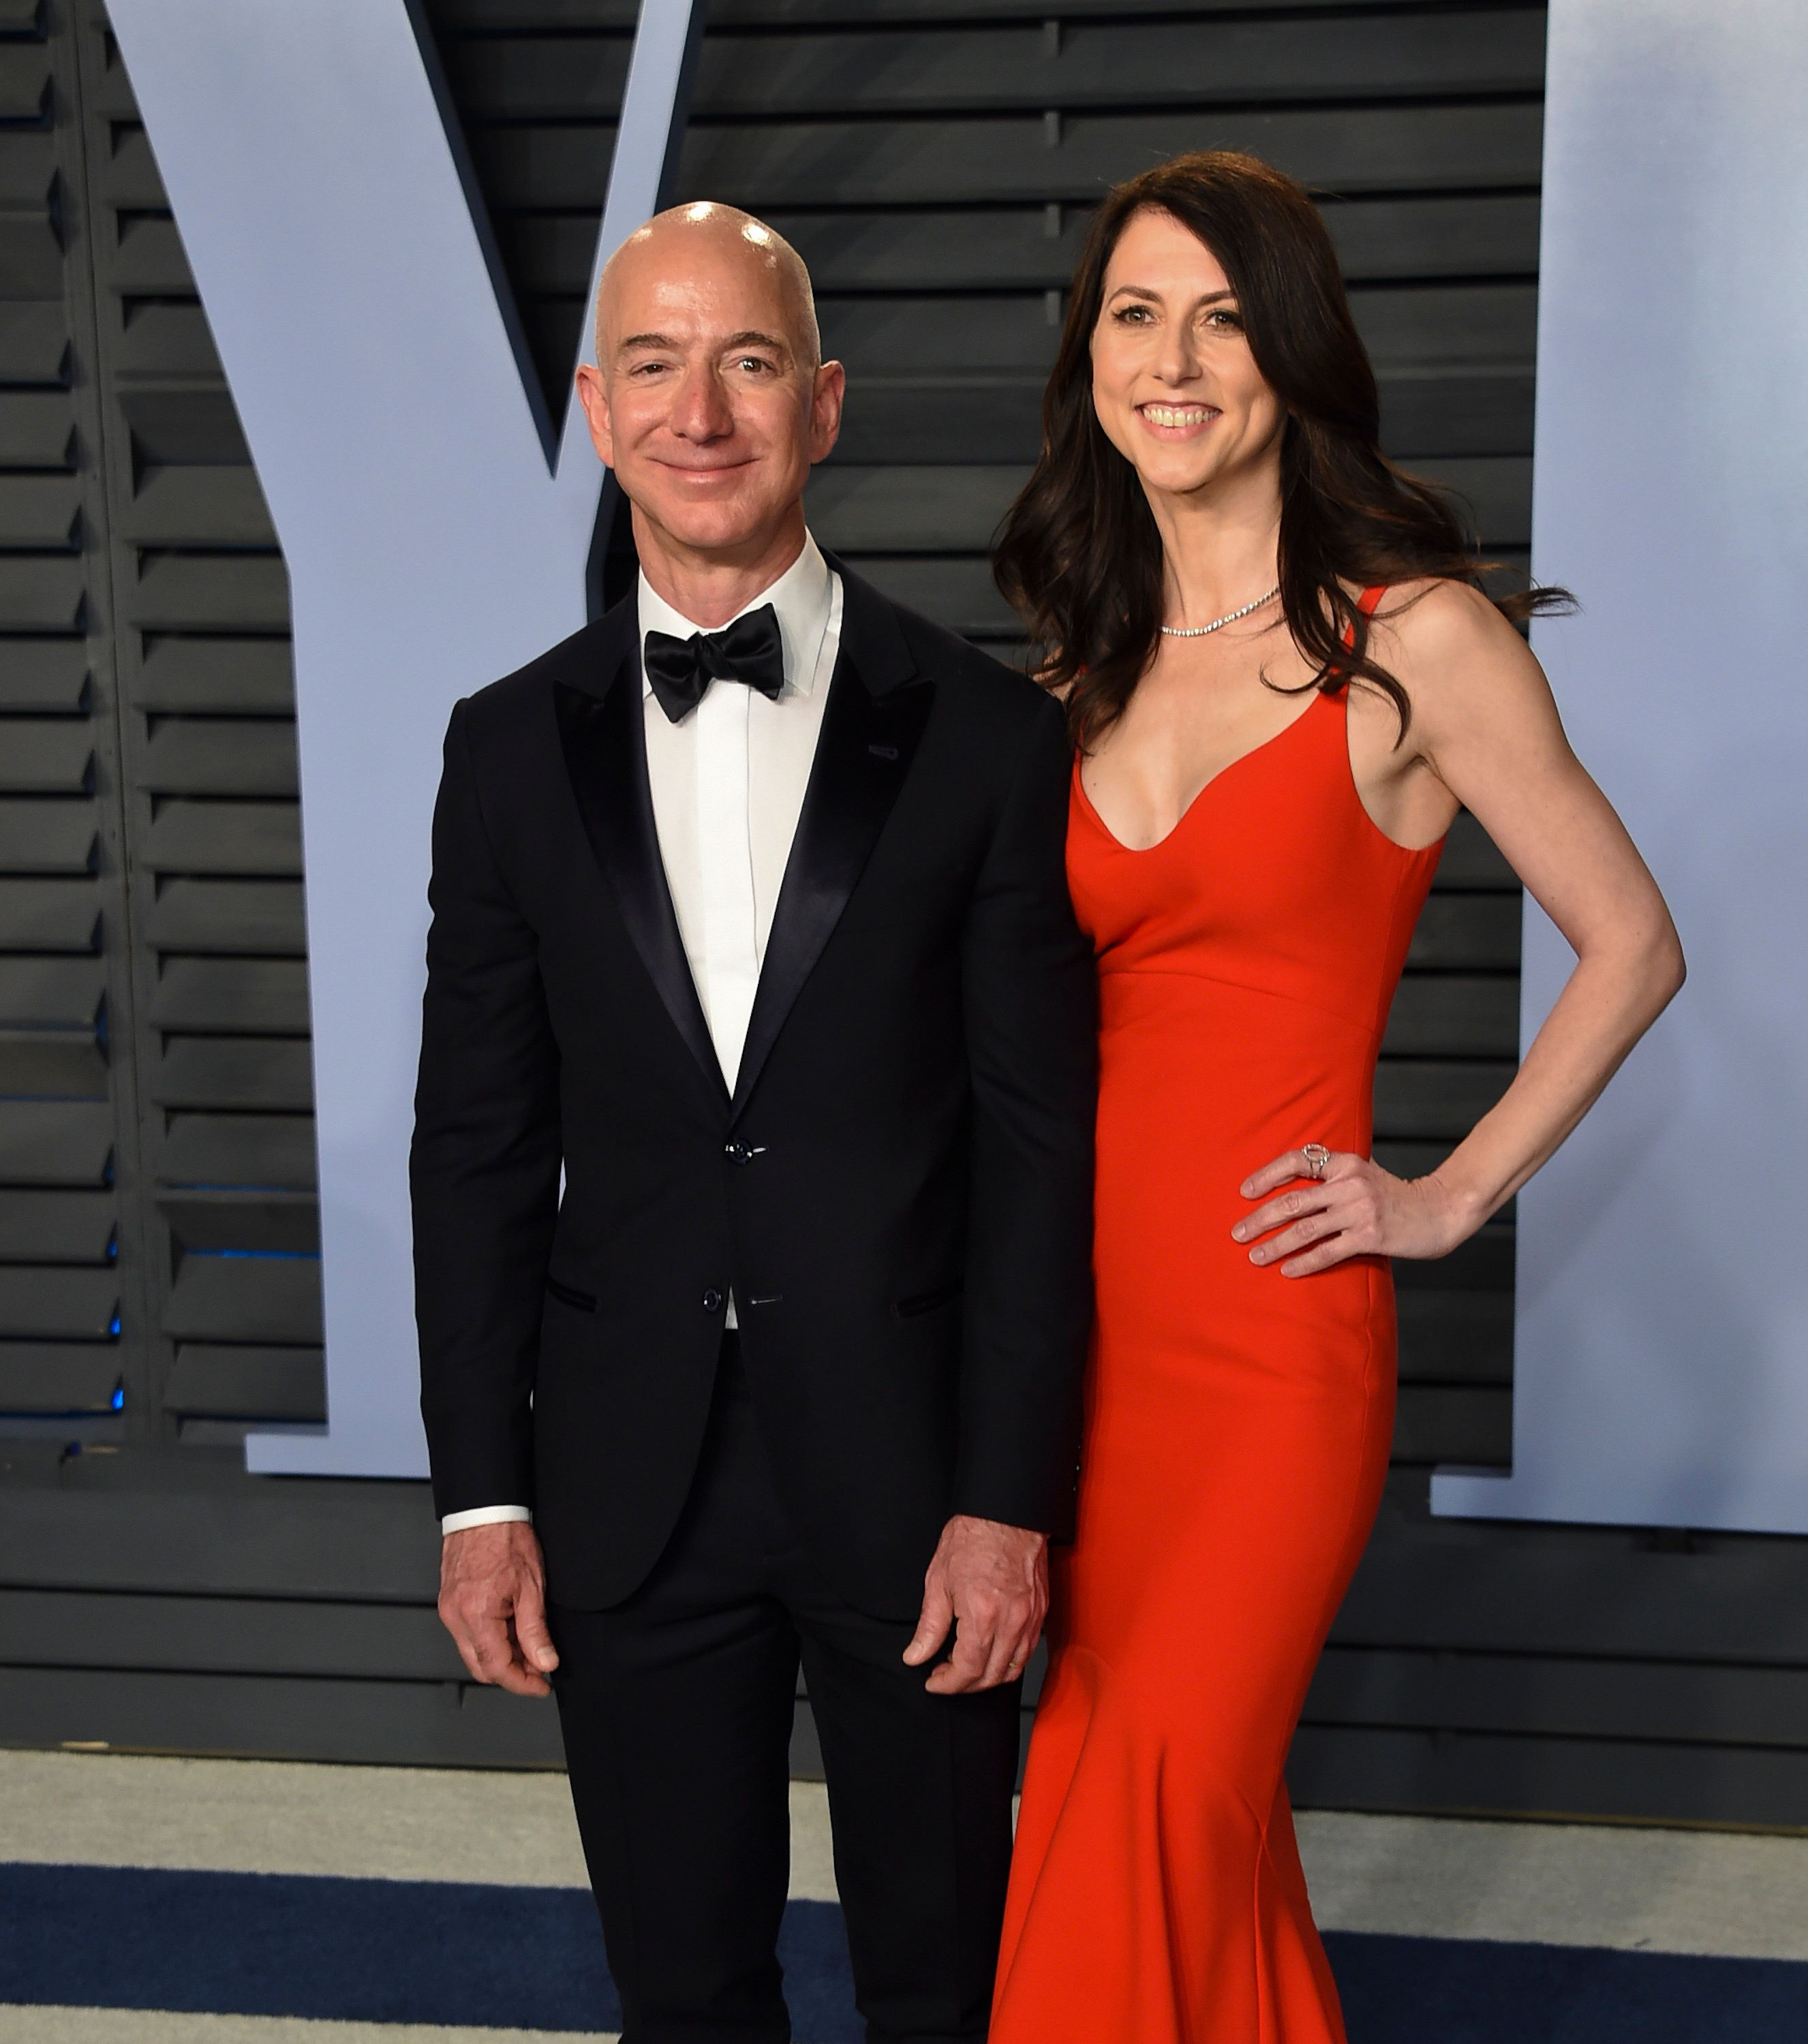 Jeff and MacKenzie Bezos have been married for 25 years.